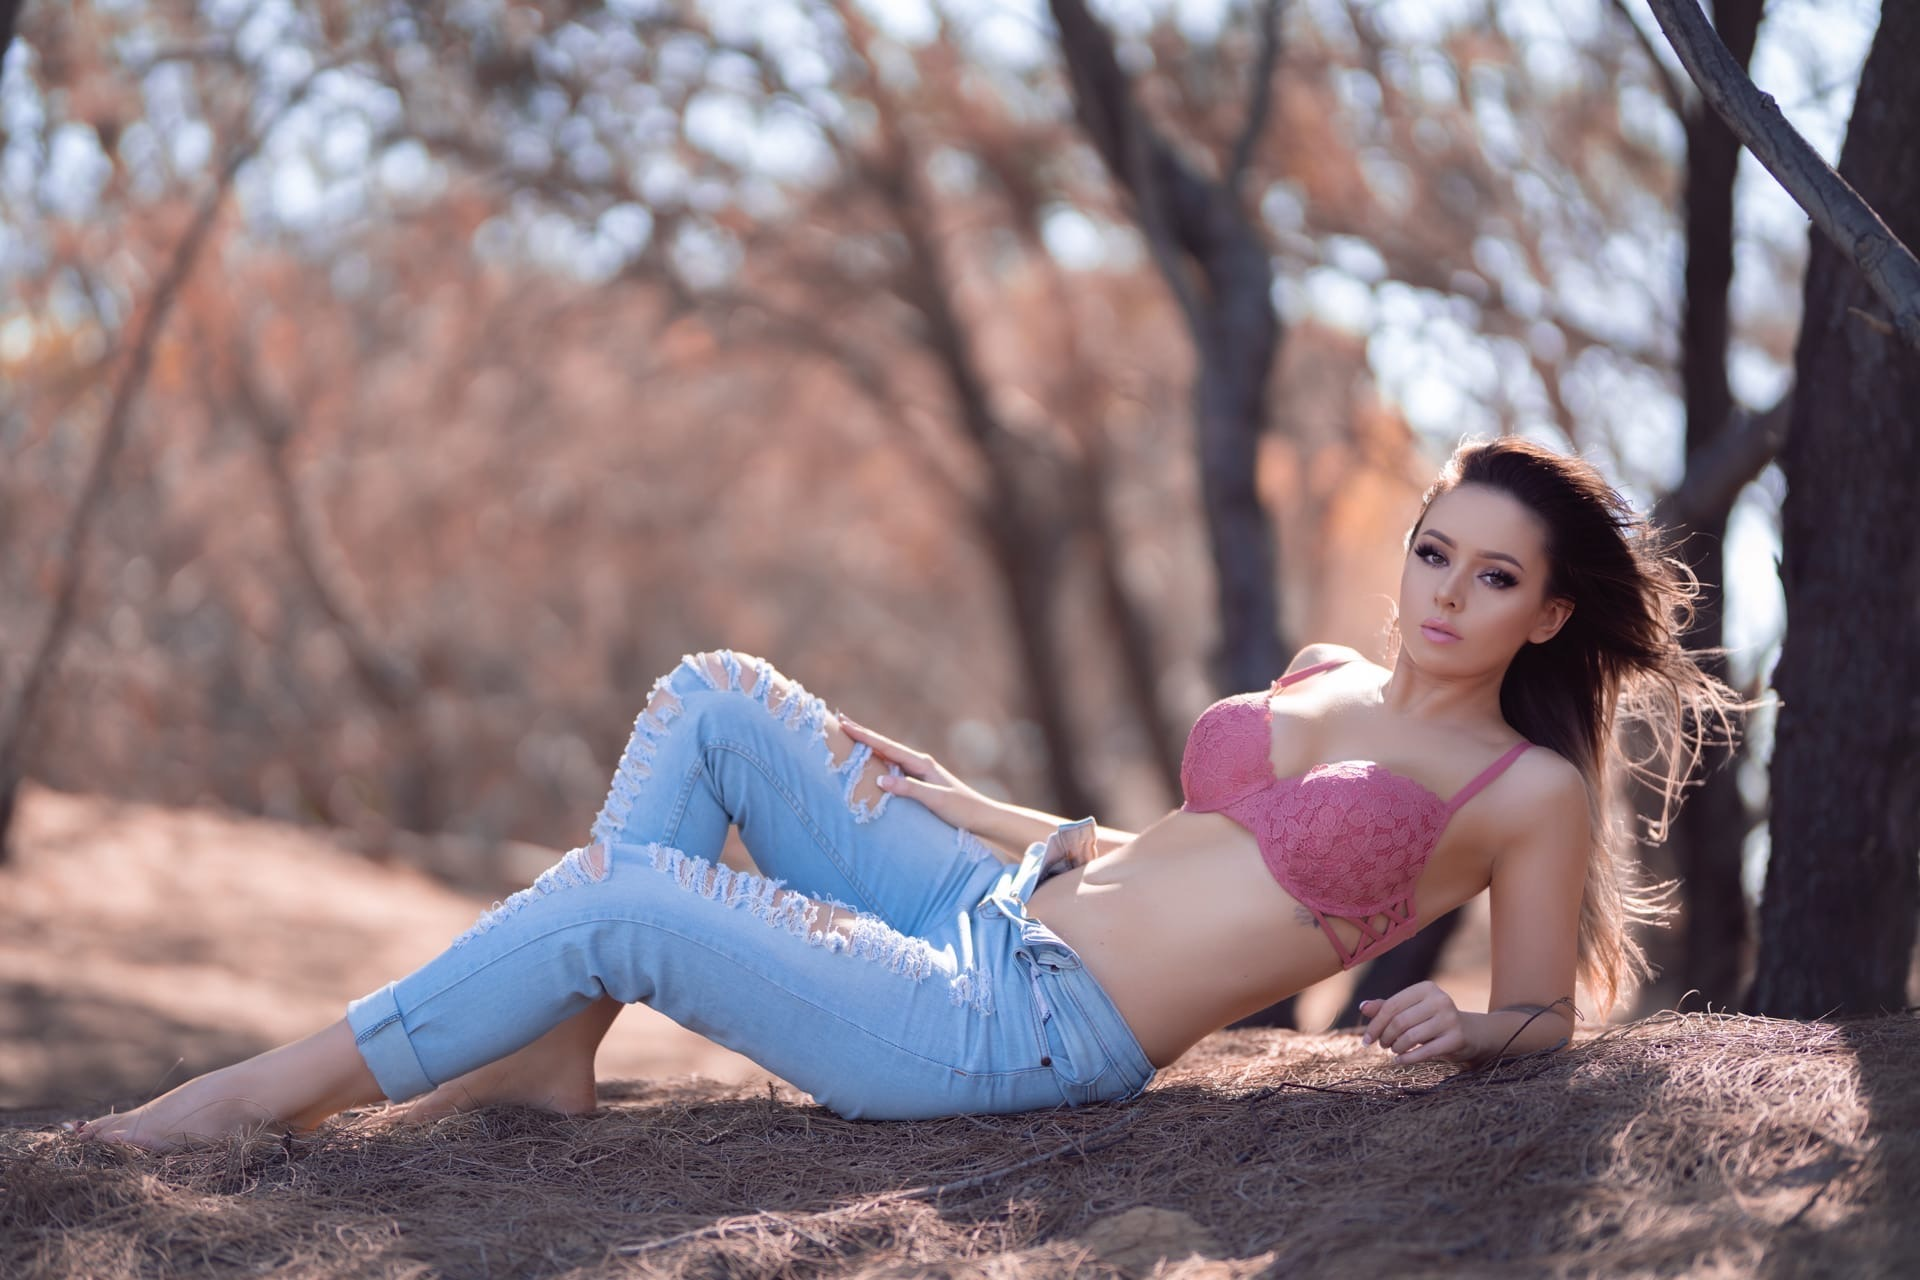 Amy Thunderbolt, Patreon, Amy Rose, Onlyfans Warm Wilderness 0056